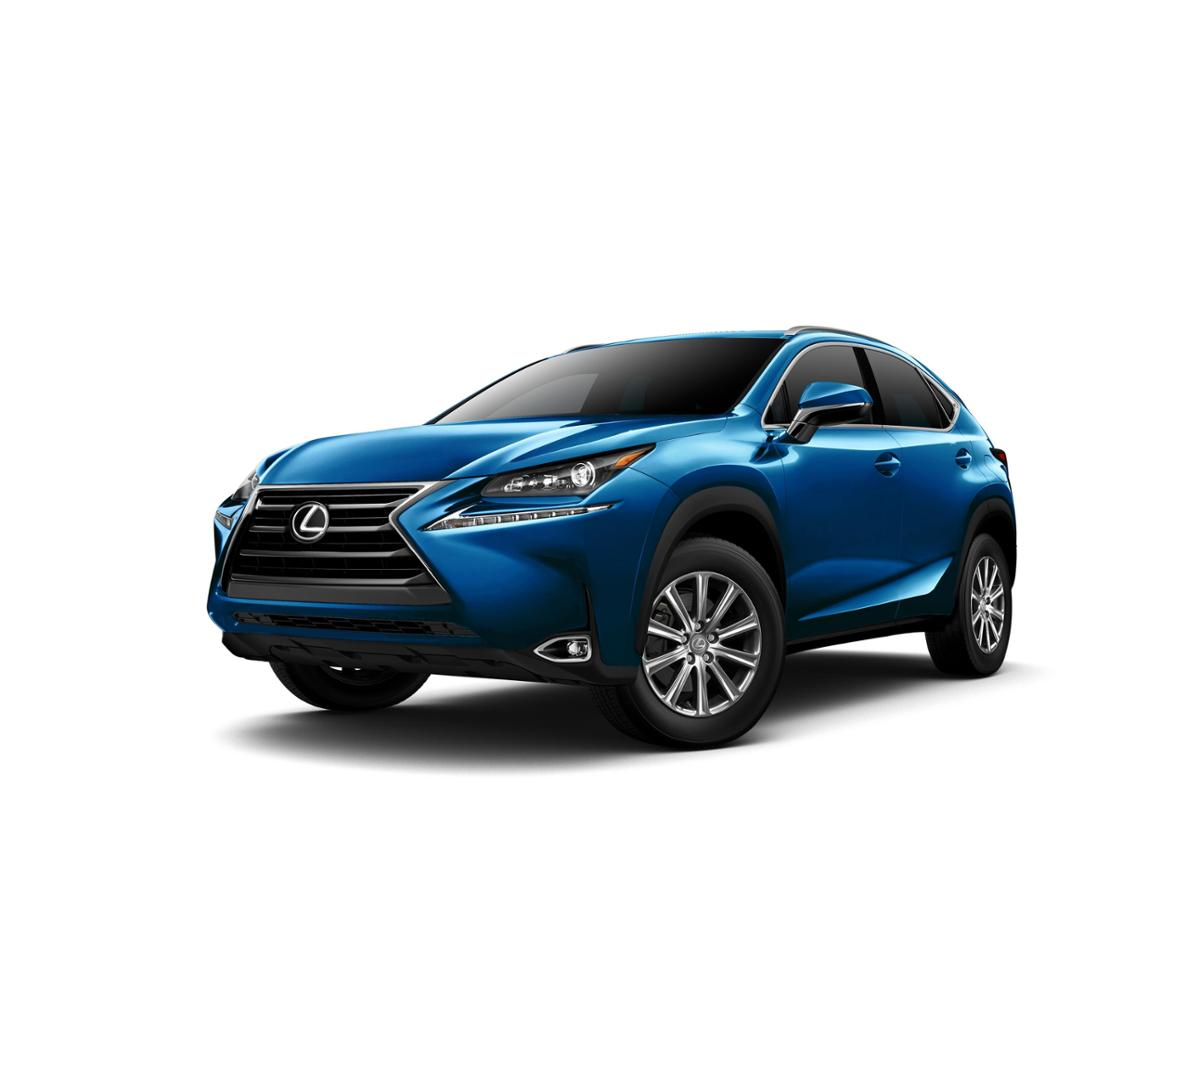 fort worth new 2017 lexus nx turbo blue vortex metallic suv for sale in dfw jtjbarbz6h2112112. Black Bedroom Furniture Sets. Home Design Ideas